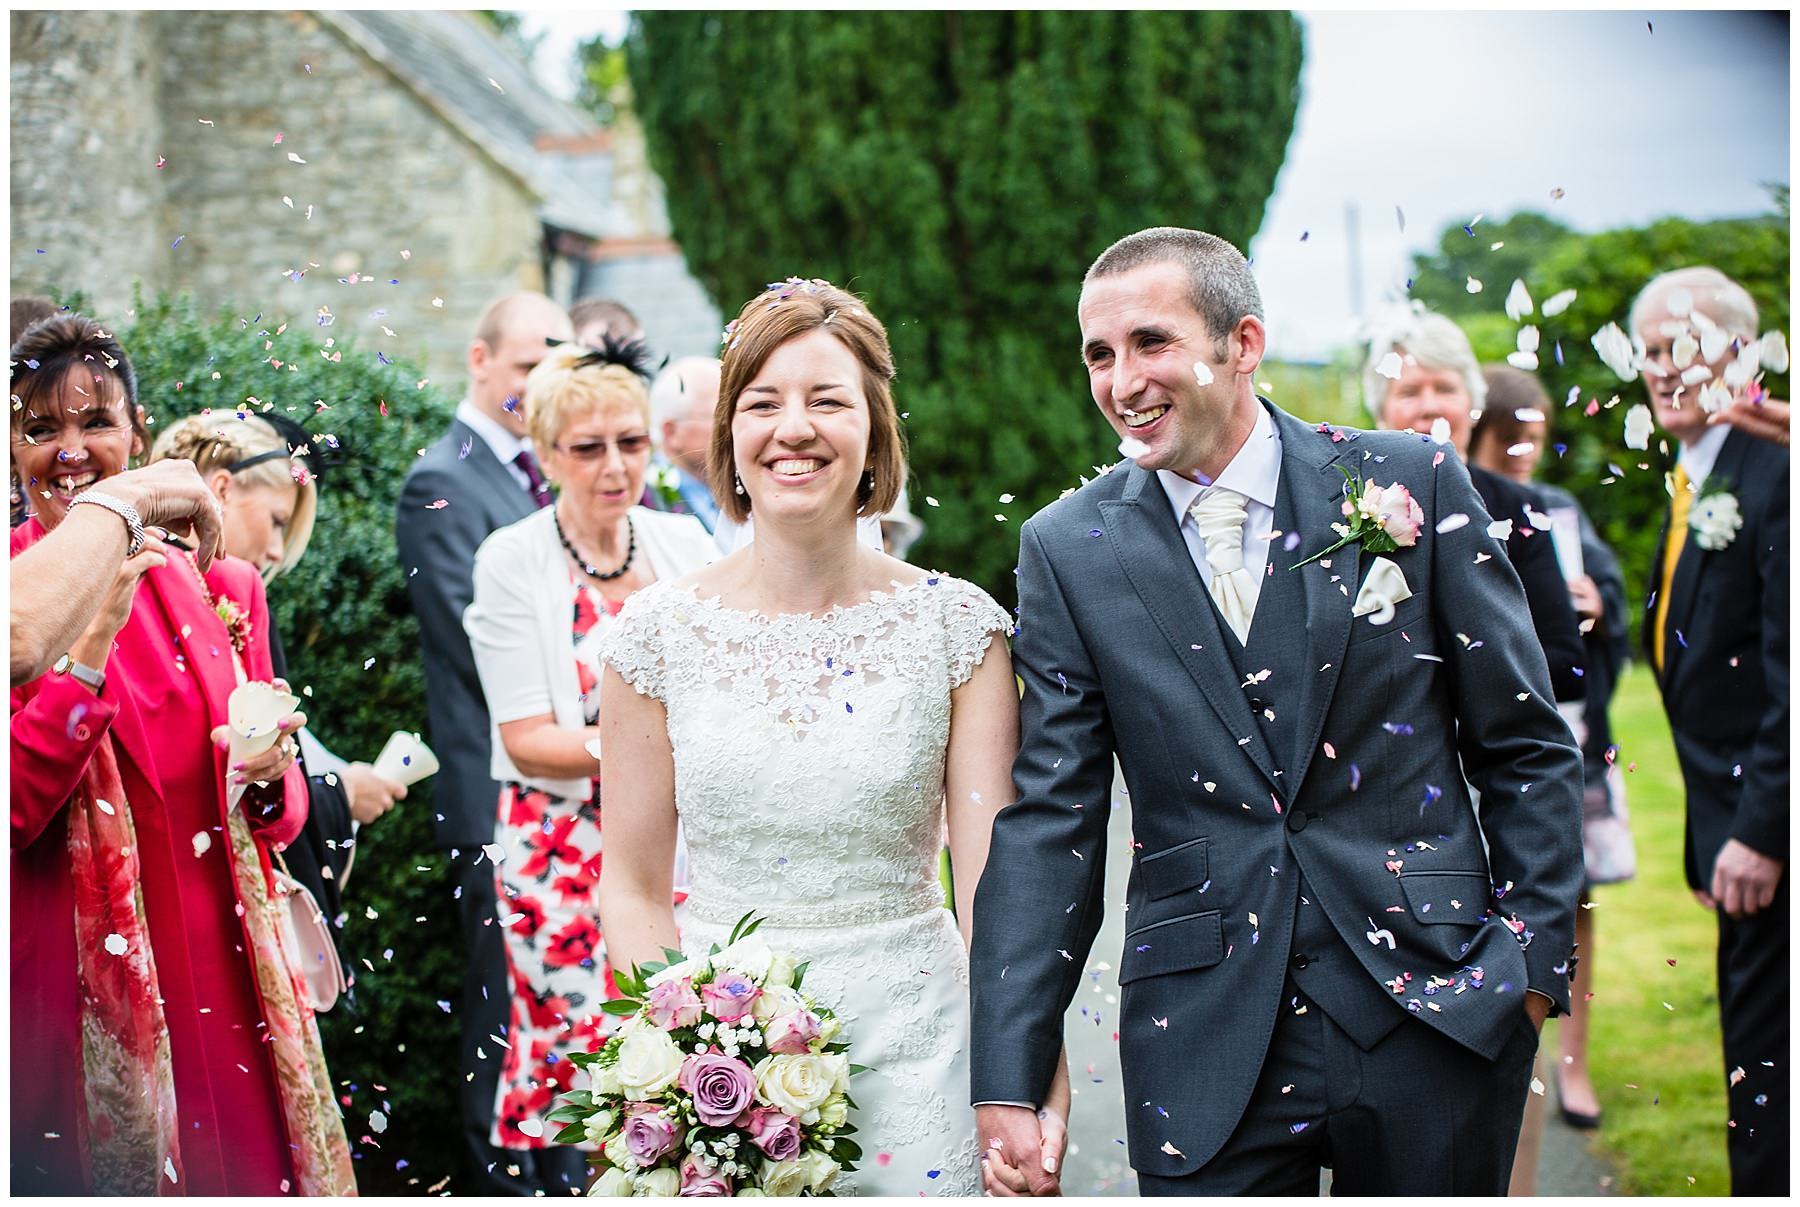 bride and groom photo at montgomery wedding - shropshire wedding photographer